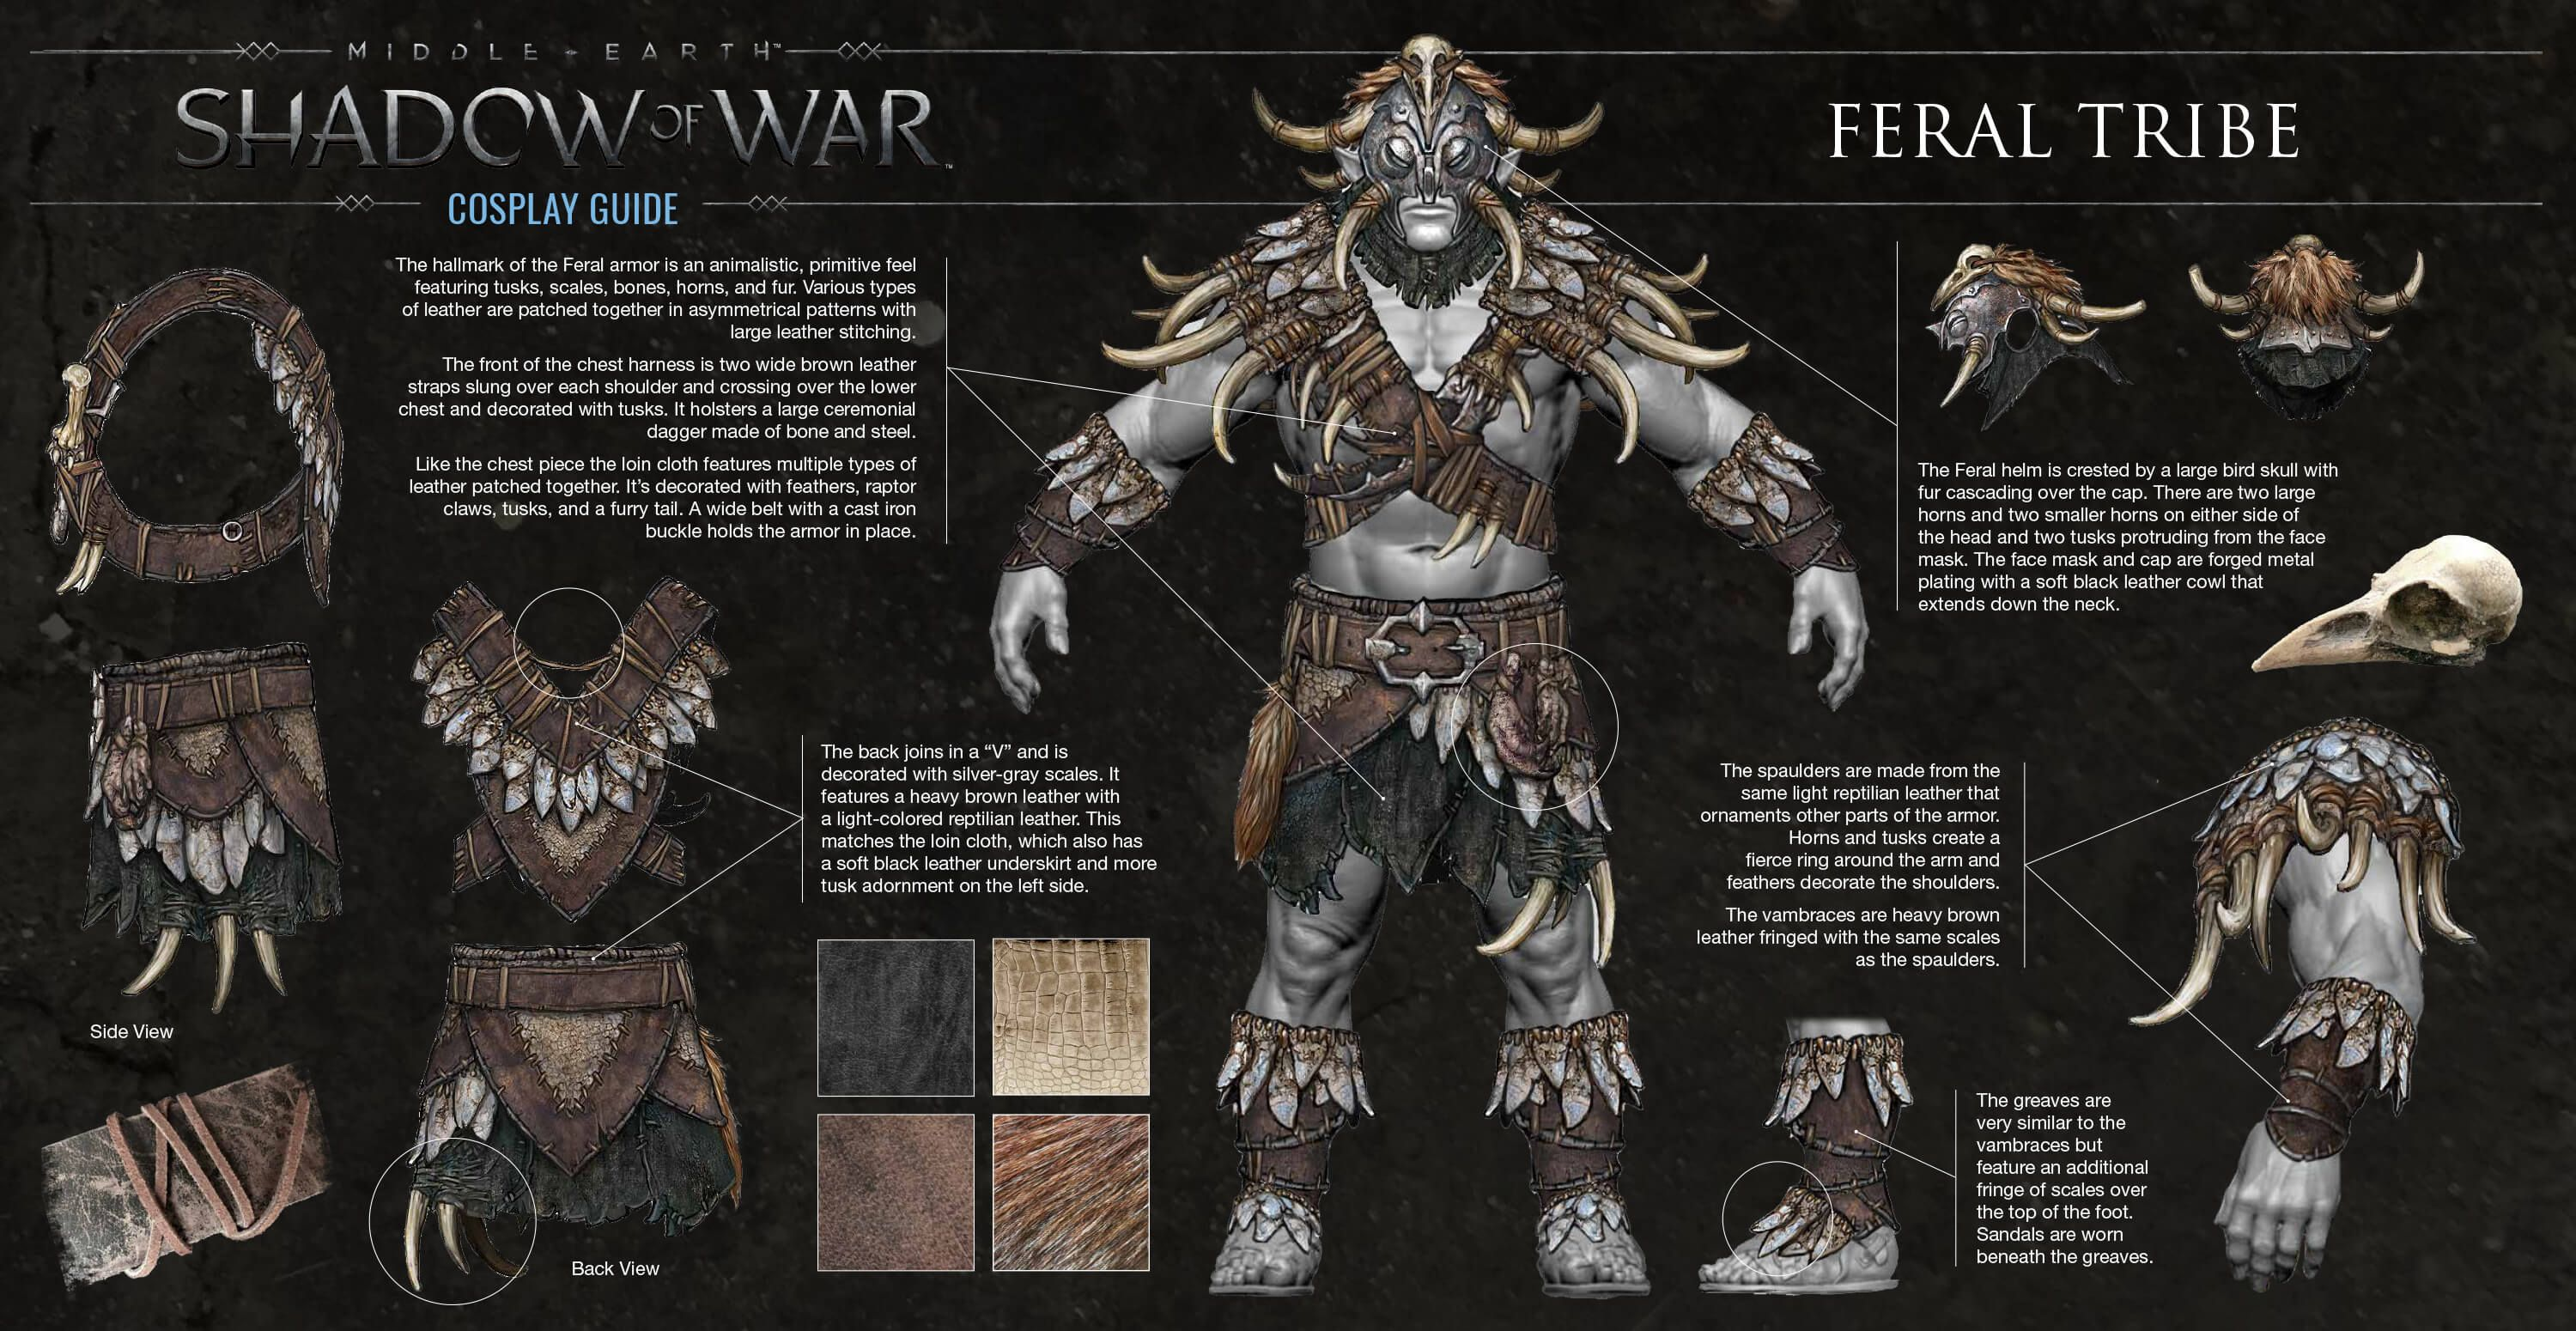 SHADOW OF WAR All 7 Orc Tribes Armor Sets Appearance Revealed